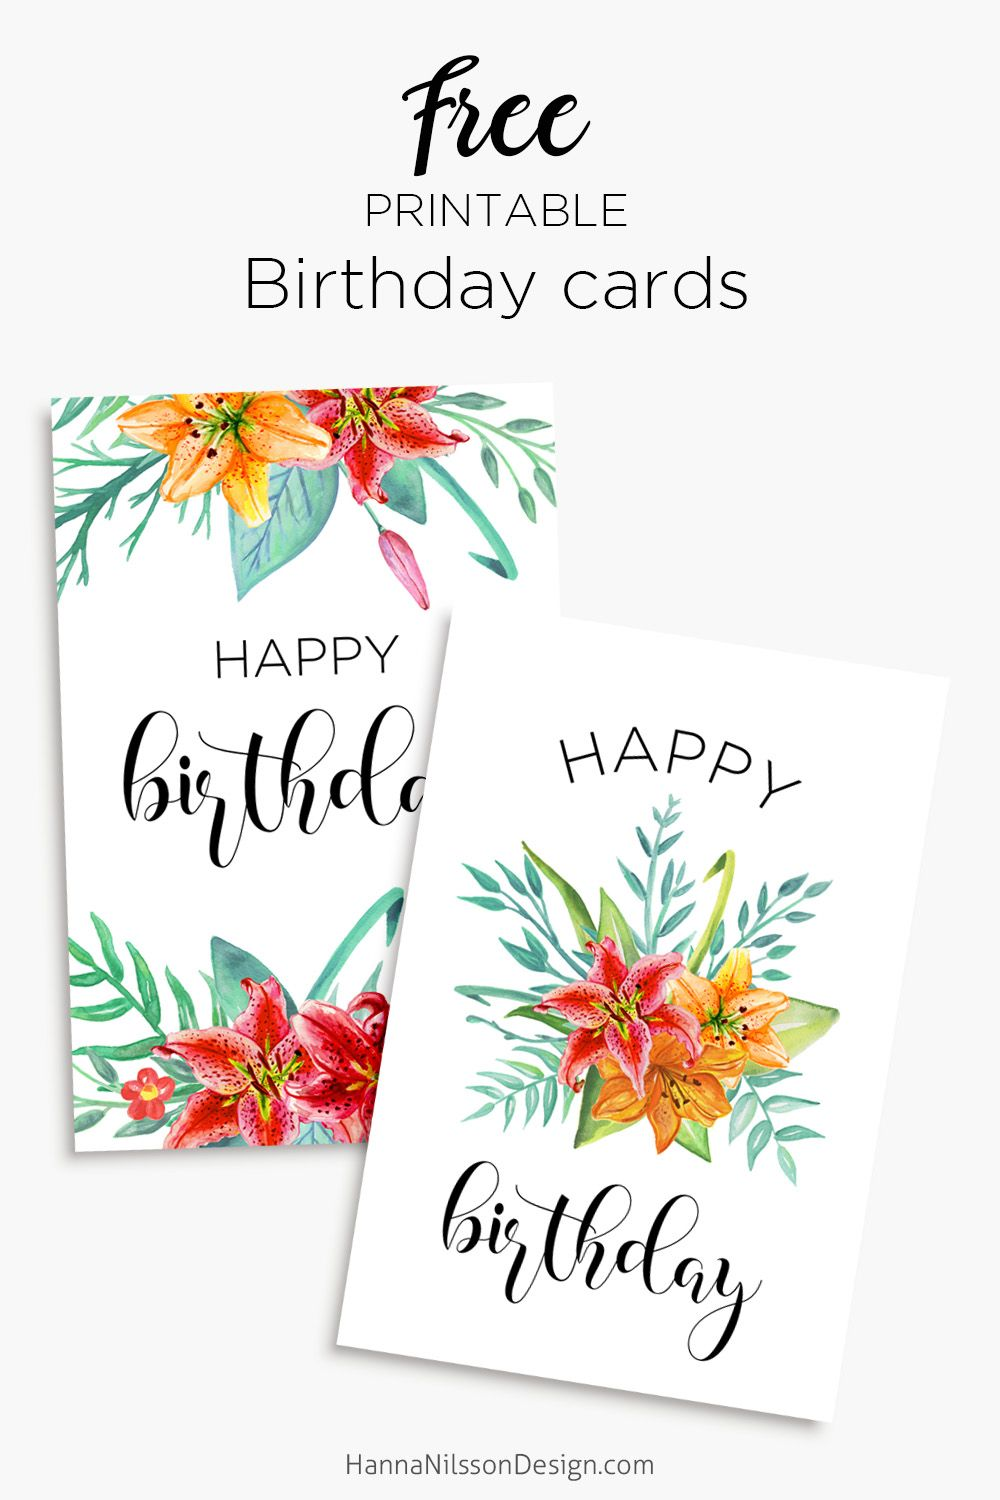 Printable Floral Birthday Cards Tags Gift Box Birthday Card Printable Free Printable Birthday Cards Birthday Cards For Mom